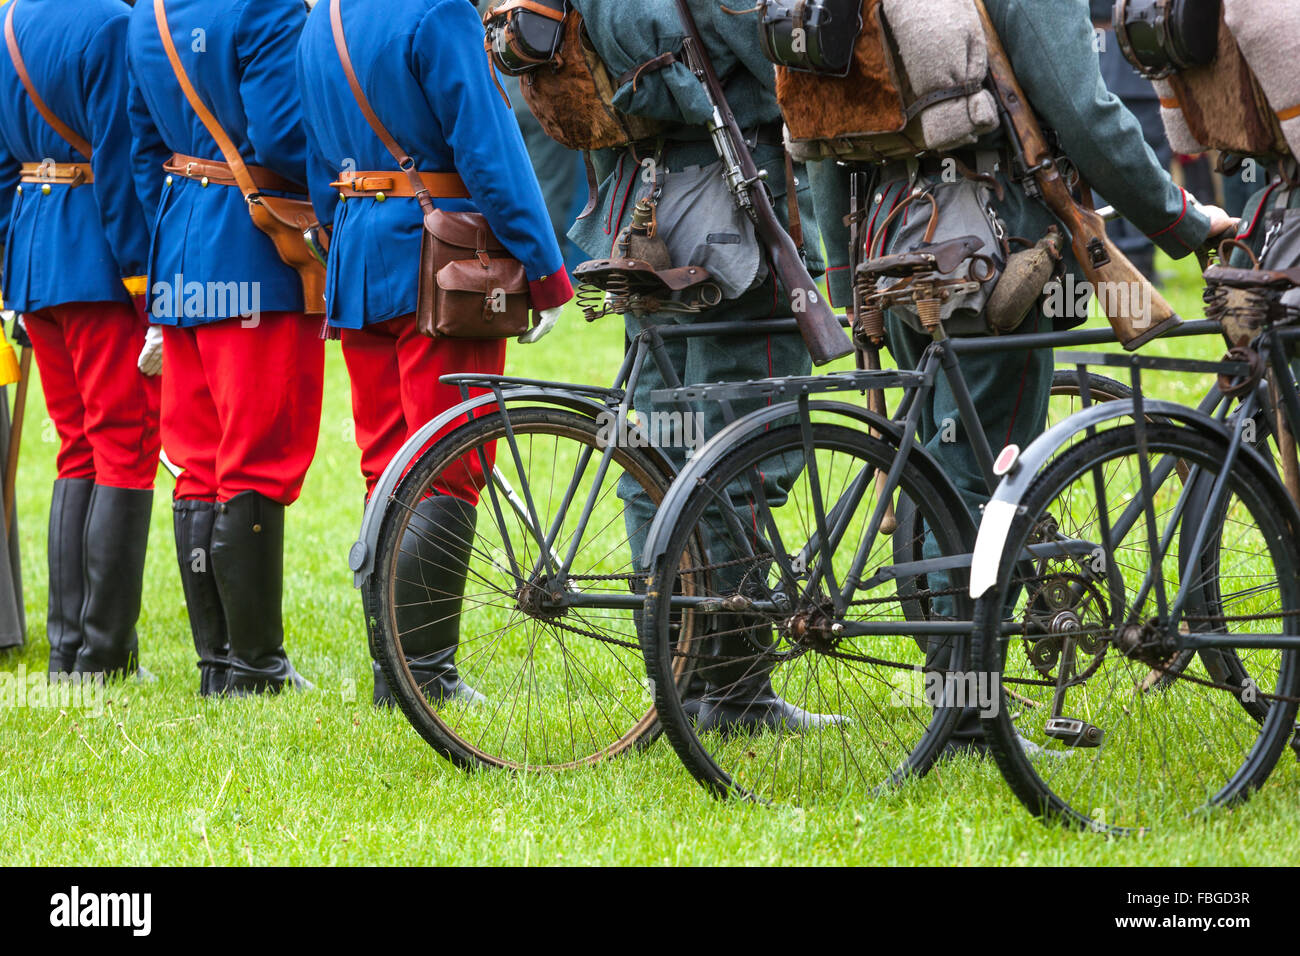 Mobile Prussian soldiers with their bicycles, Czech Republic - Stock Image